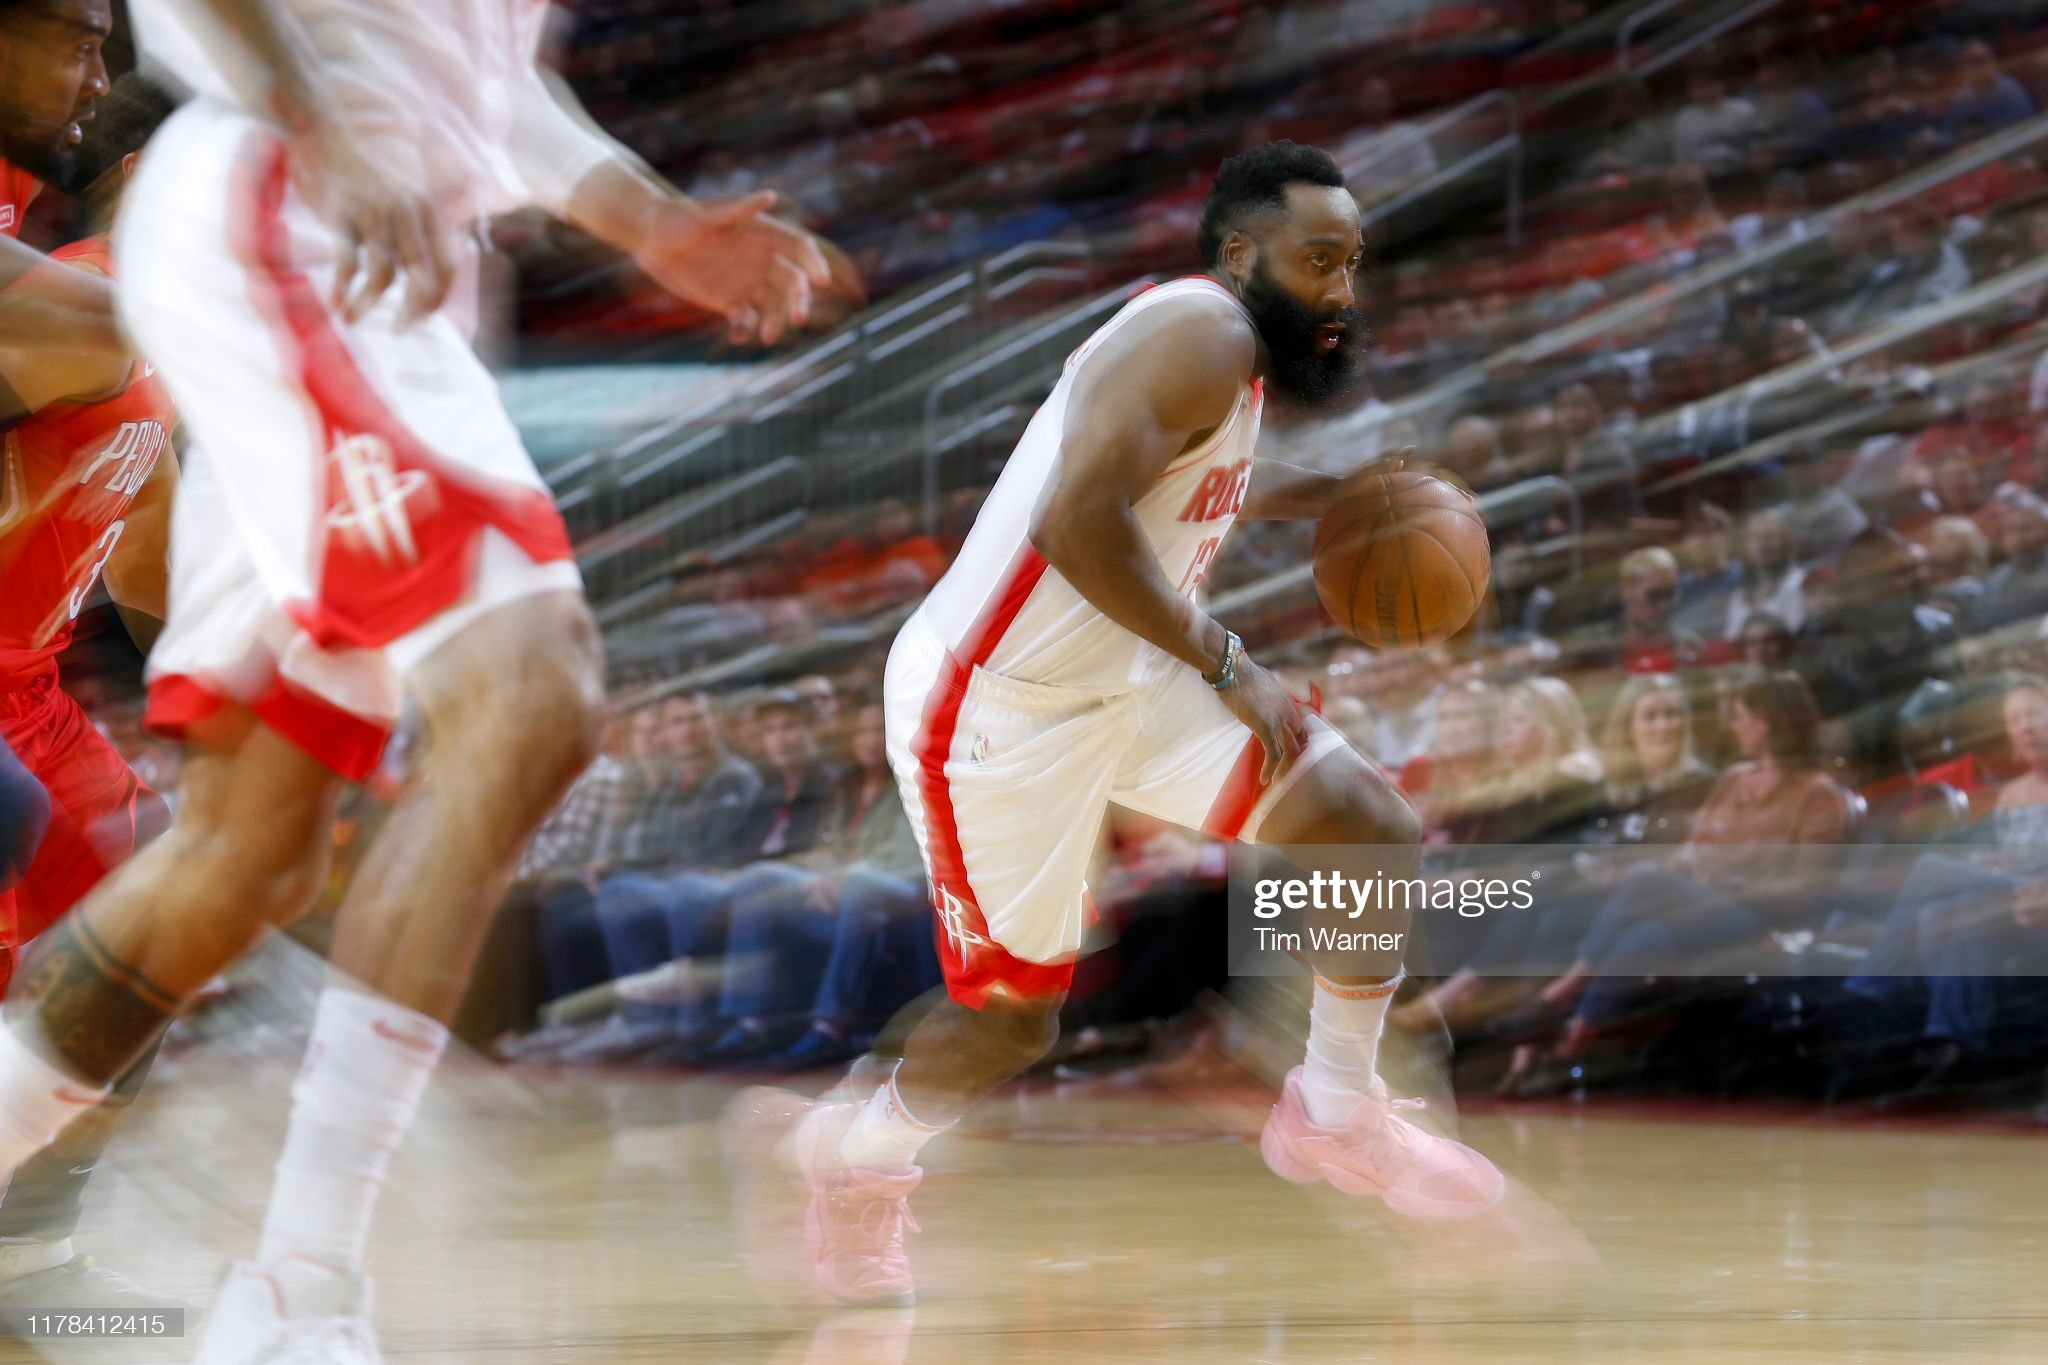 james-harden-of-the-houston-rockets-driv